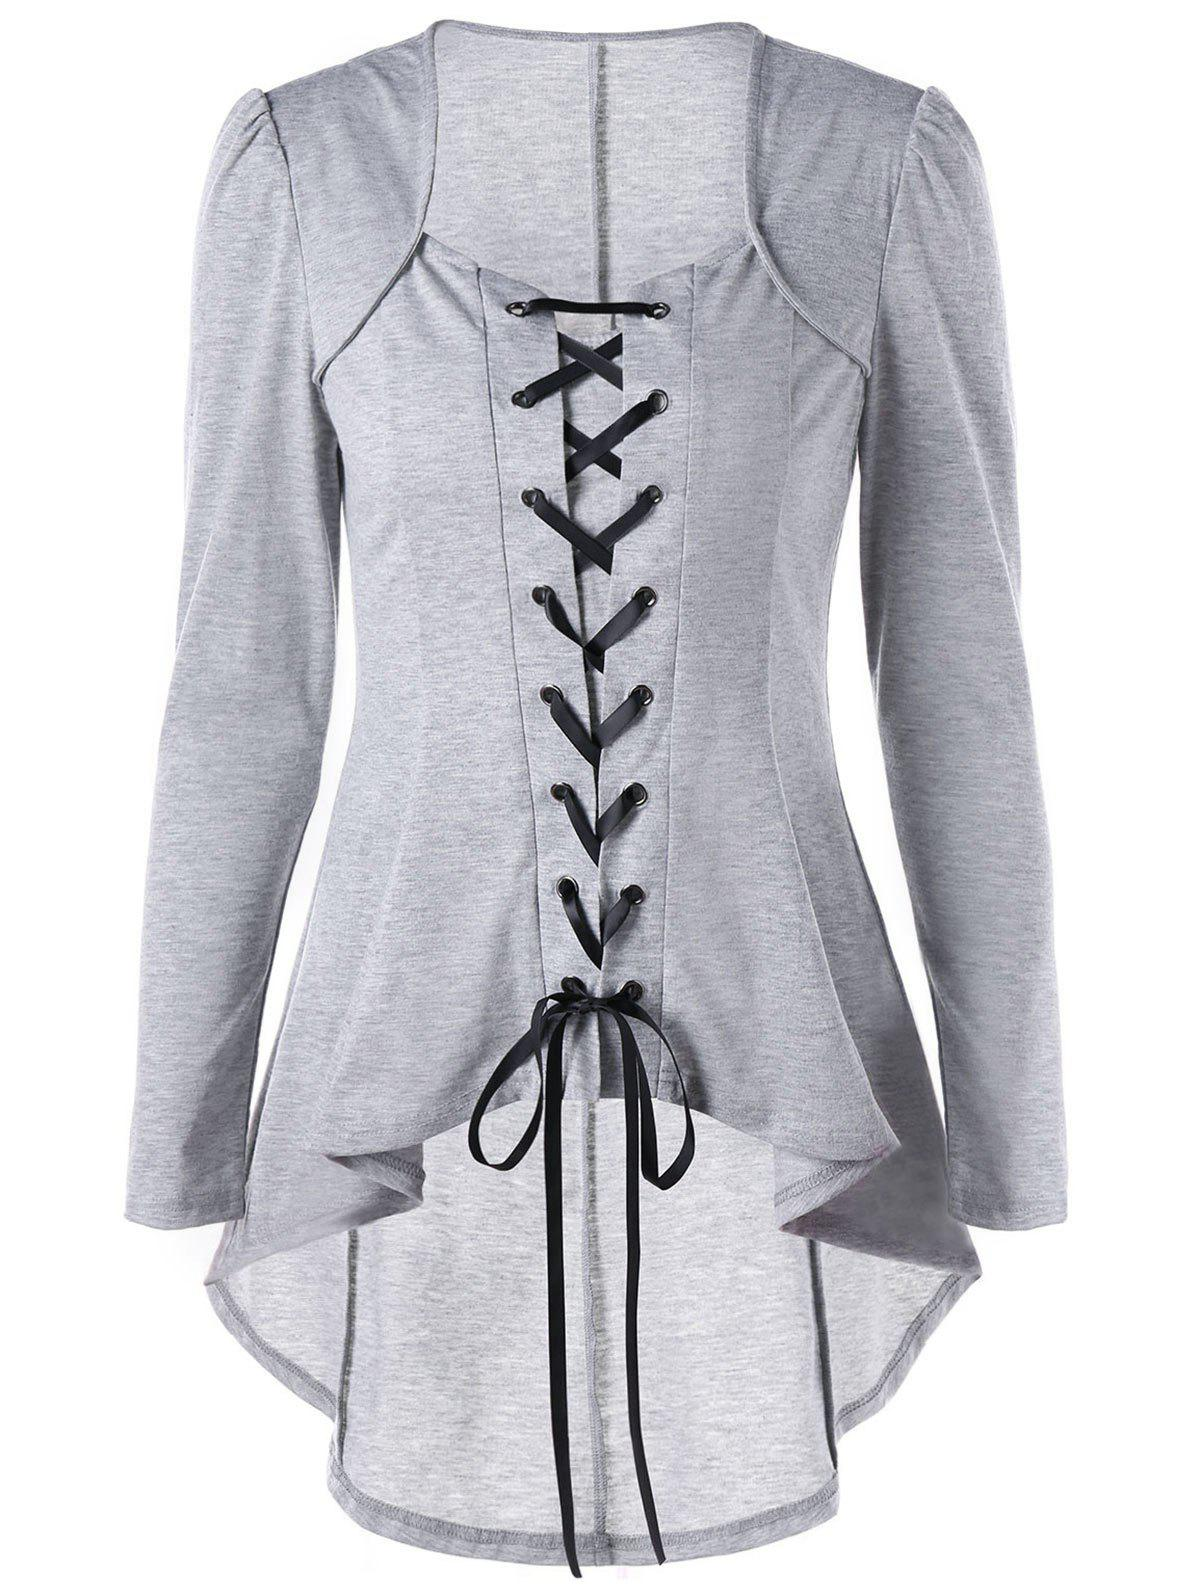 High Low Hem Lace Up TopWOMEN<br><br>Size: L; Color: LIGHT GREY; Material: Polyester,Spandex; Shirt Length: Long; Sleeve Length: Full; Collar: Square Neck; Style: Gothic; Pattern Type: Solid; Season: Fall,Spring; Weight: 0.3000kg; Package Contents: 1 x Top;